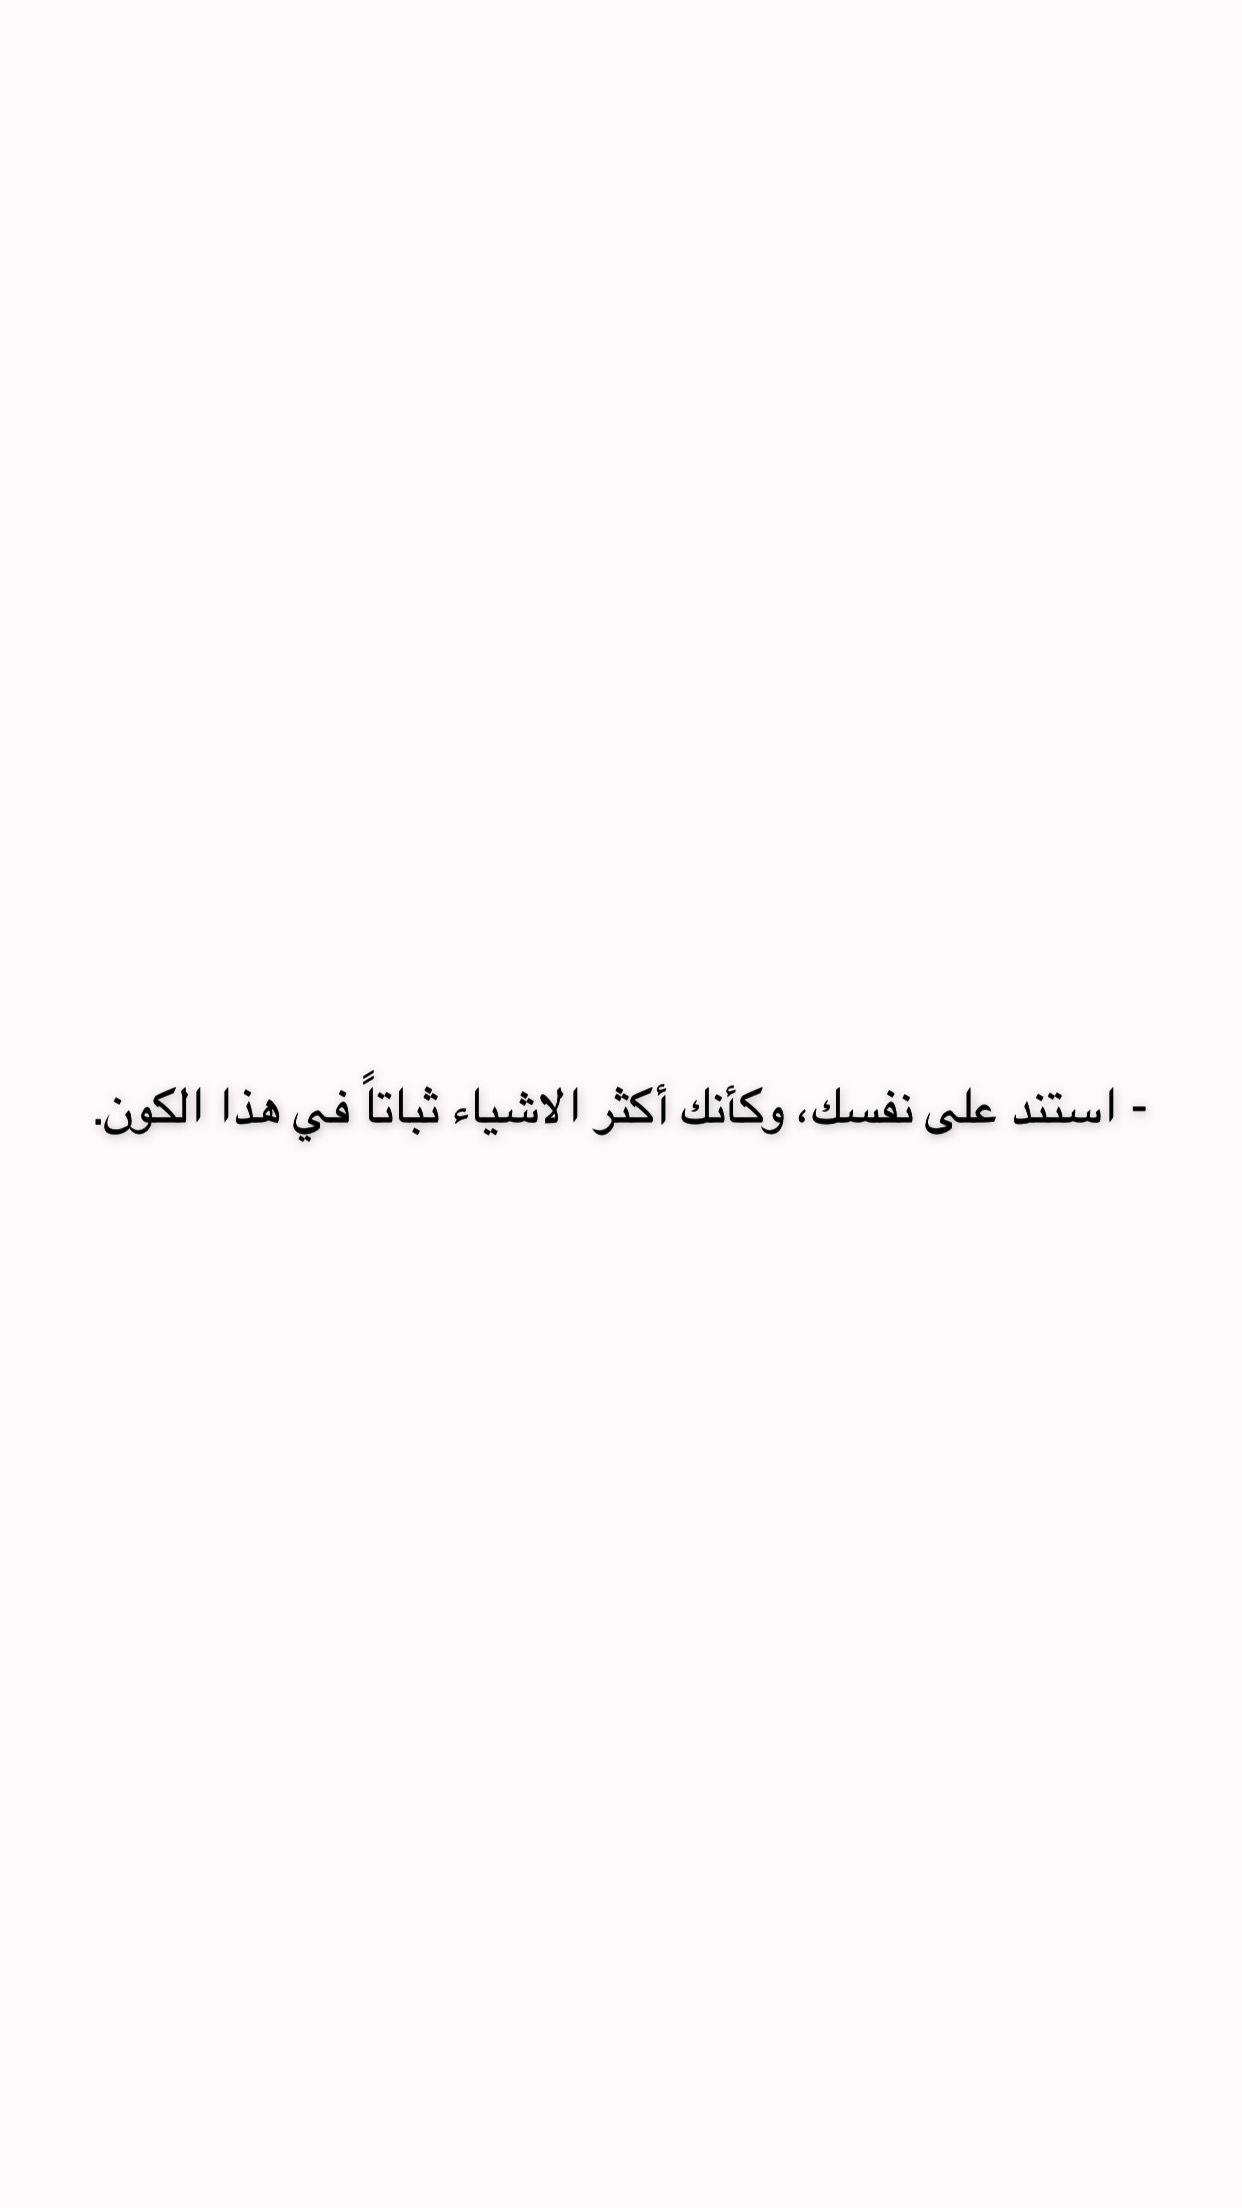 Pin By Yusra Asmar On Snapchat Postive Quotes Quotes Deep Instagram Quotes